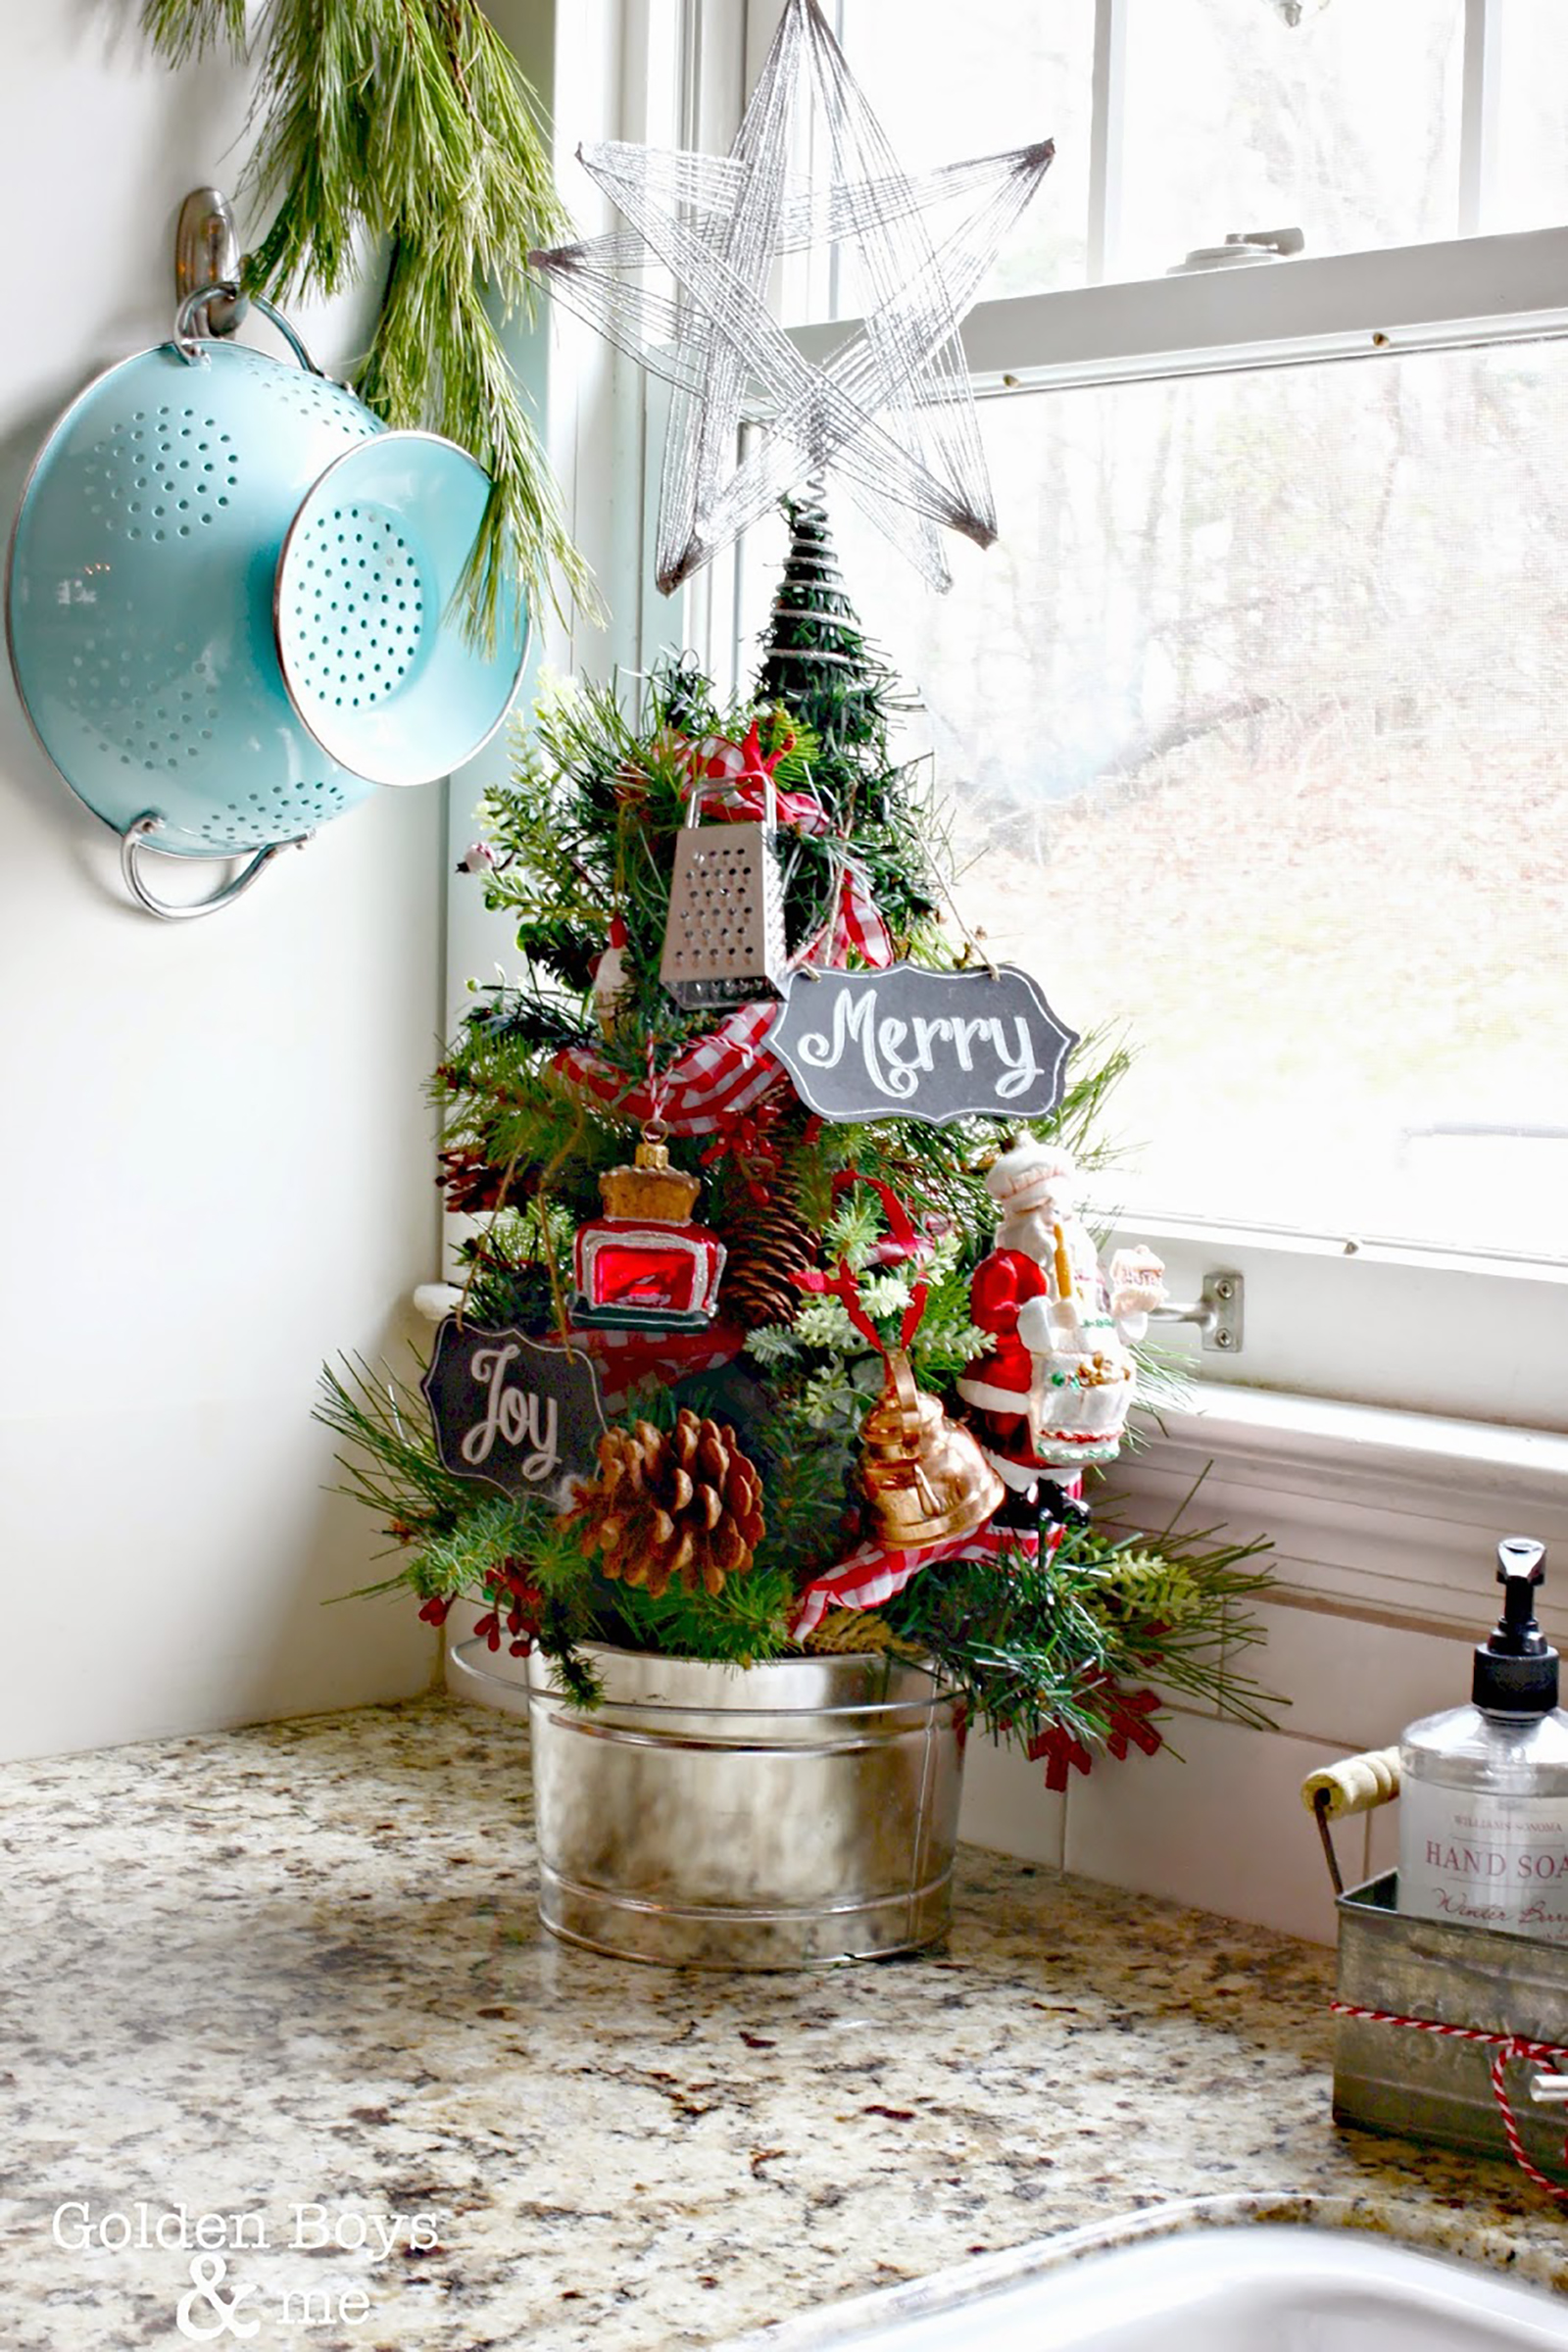 15 Best Small Christmas Trees - Ideas for Decorating Mini ...